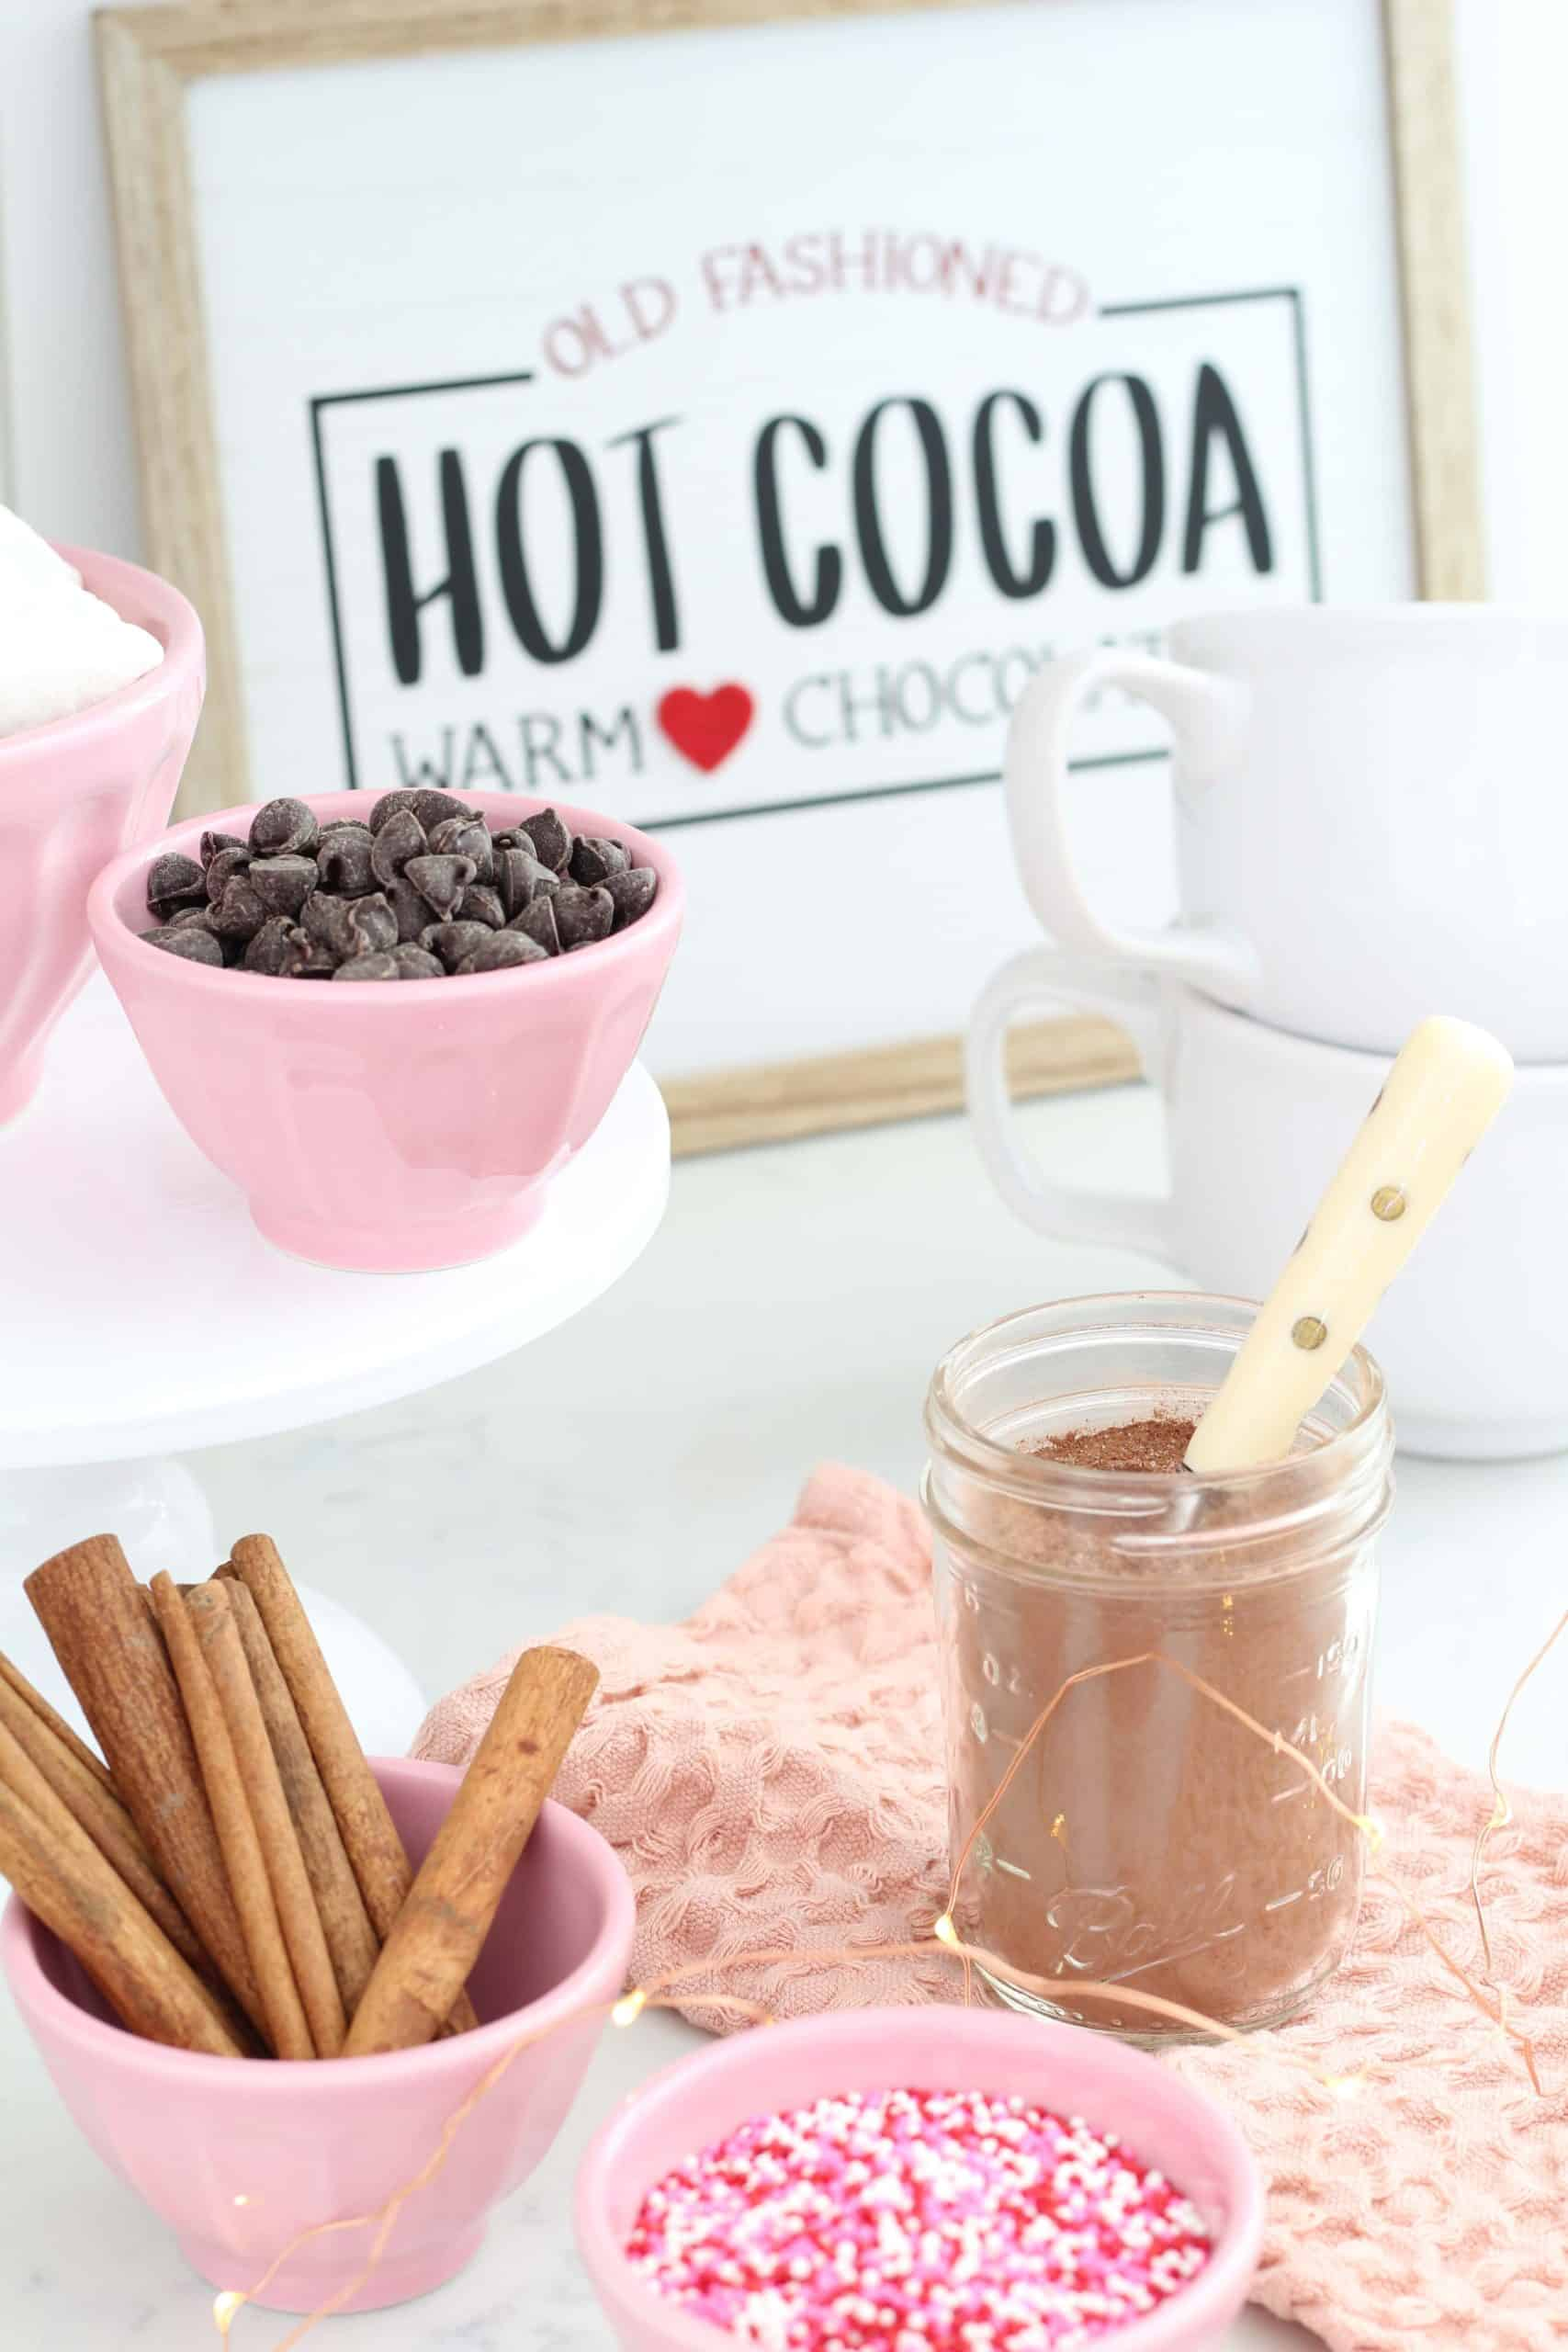 hot cocoa sign, pink anthropologie bowls, hot cocoa powder in ball jar